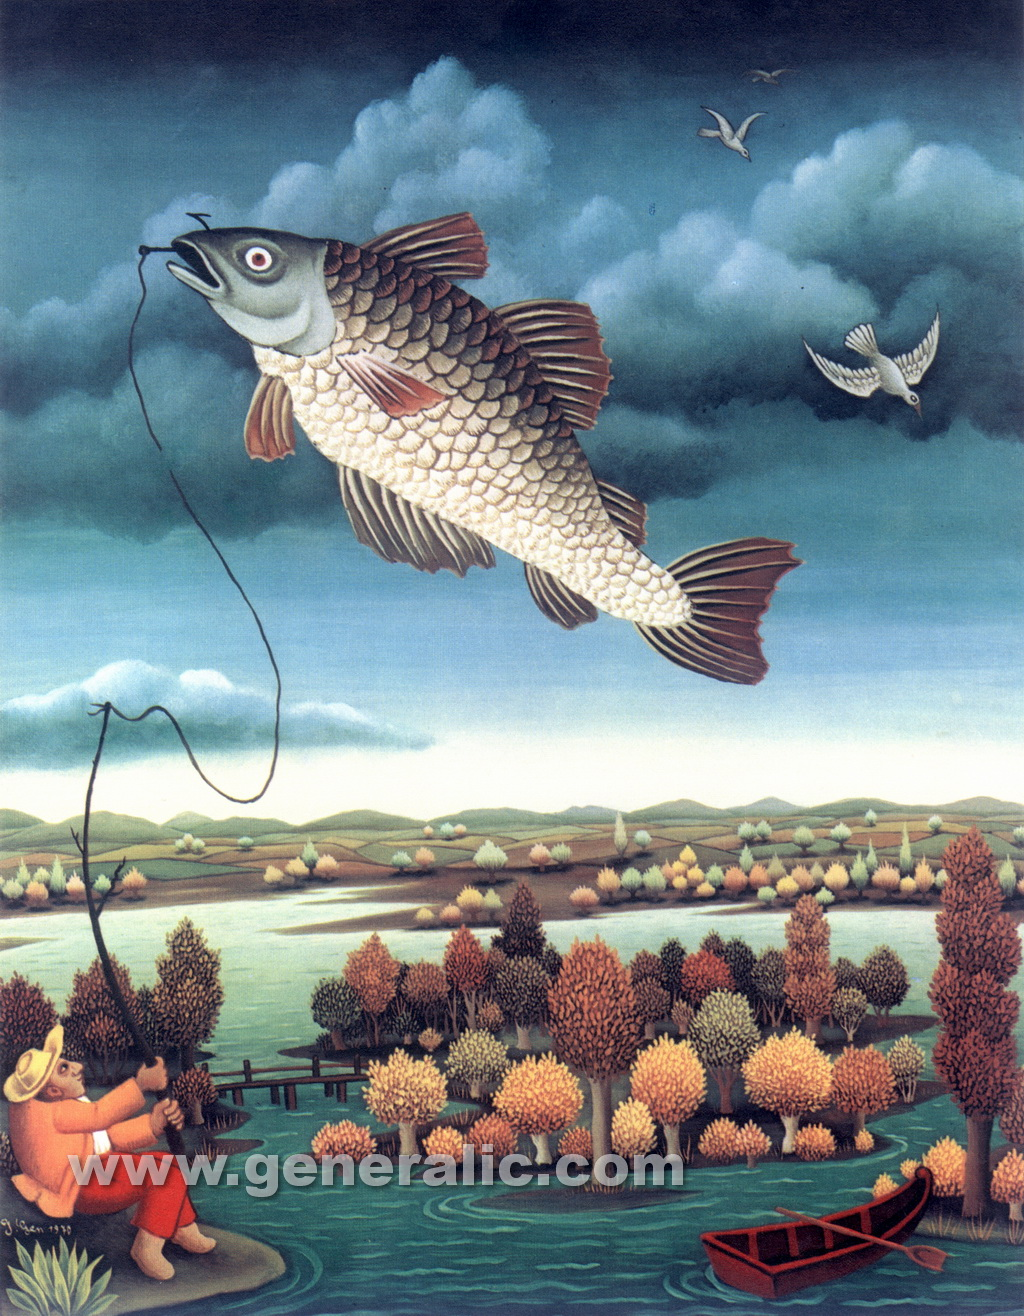 Ivan Generalic, 1970, Fish in the air, oil on glass